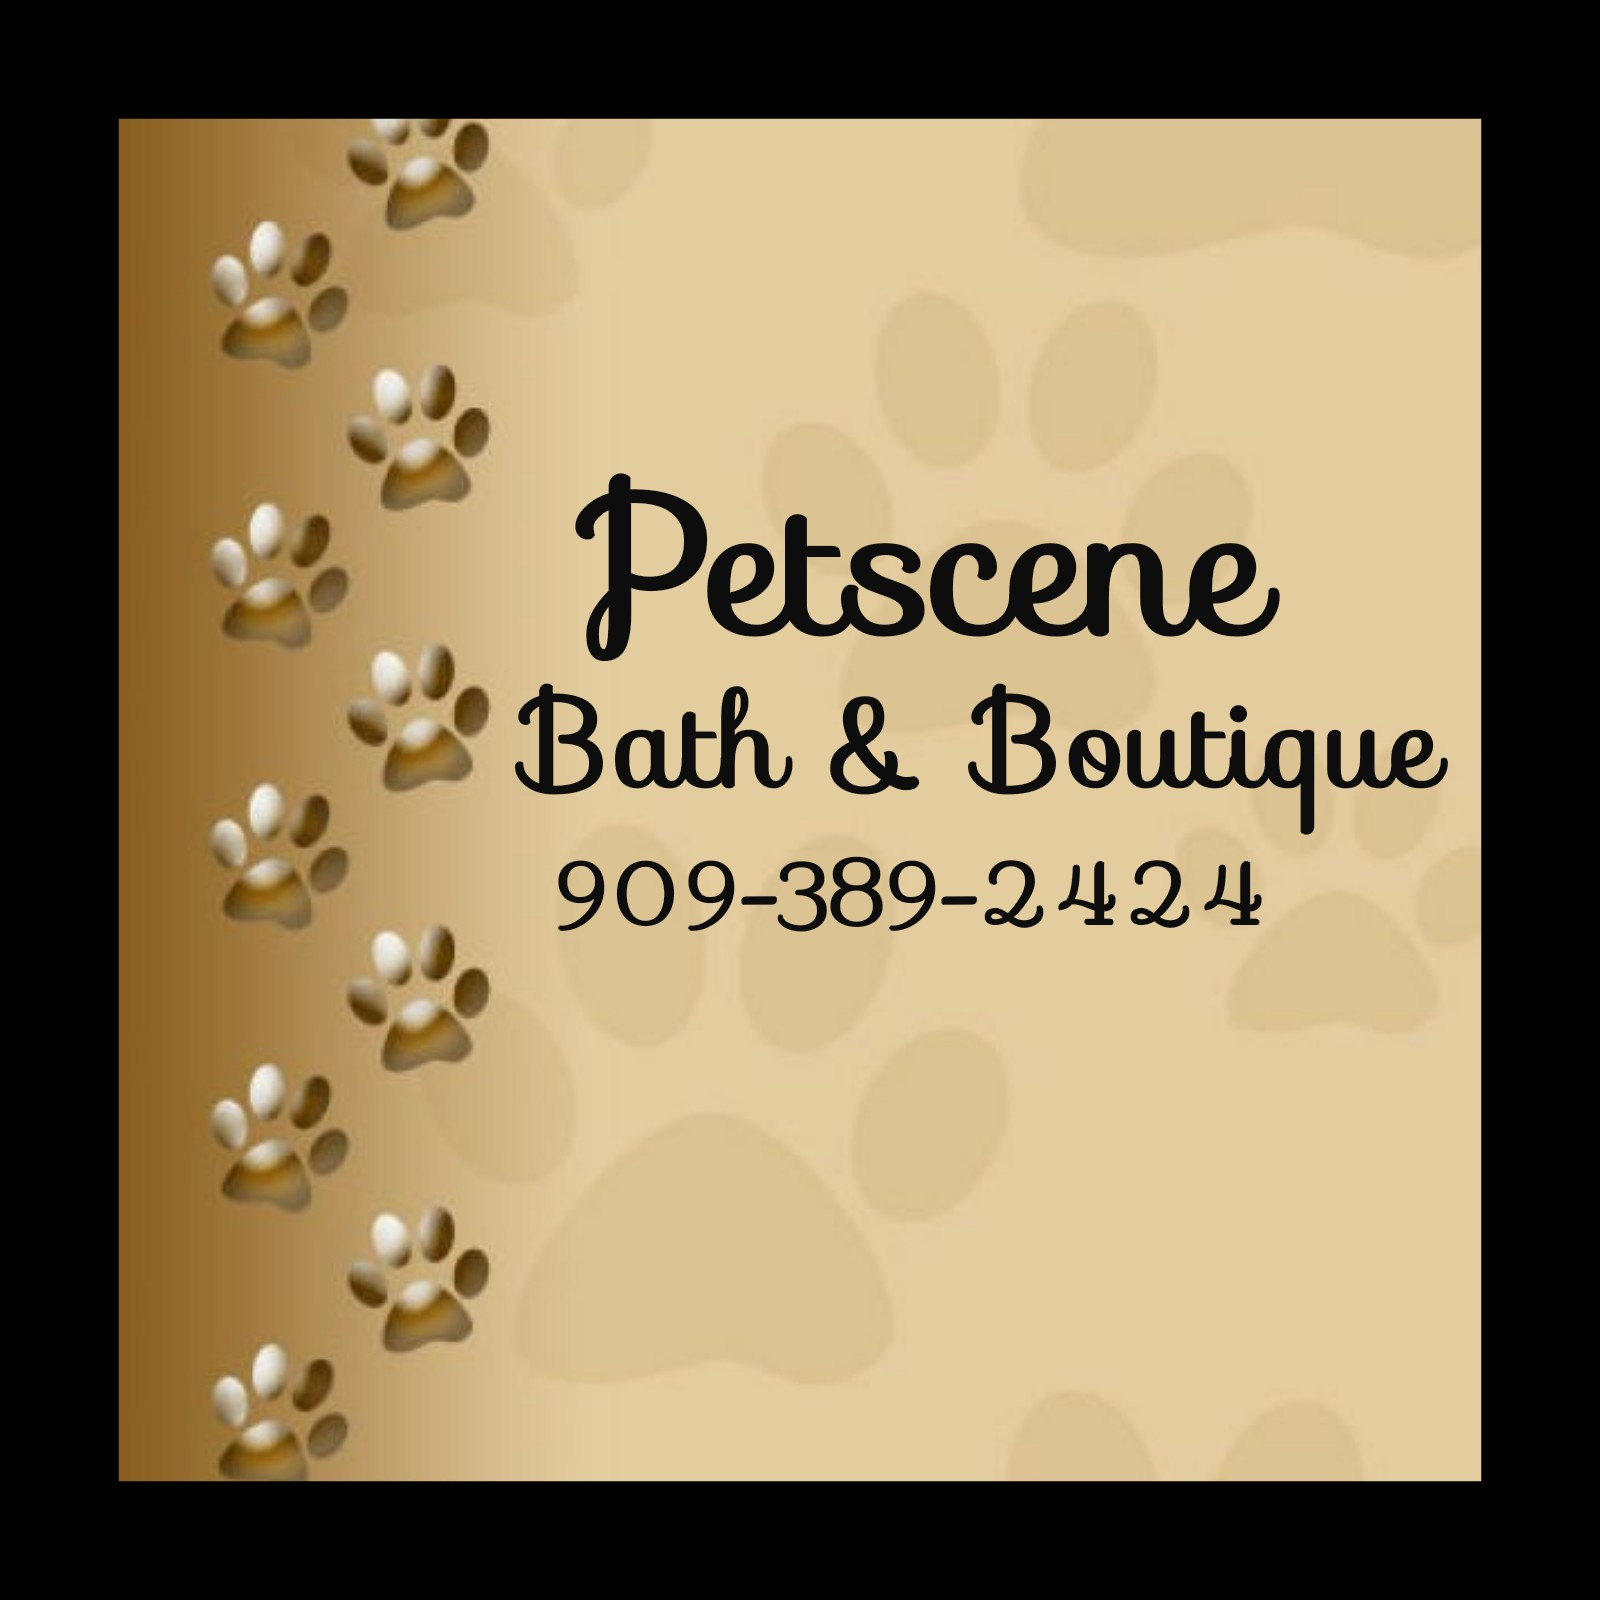 Pet scene bath boutique where your pets the star grooming boutique and self serve dog wash solutioingenieria Gallery